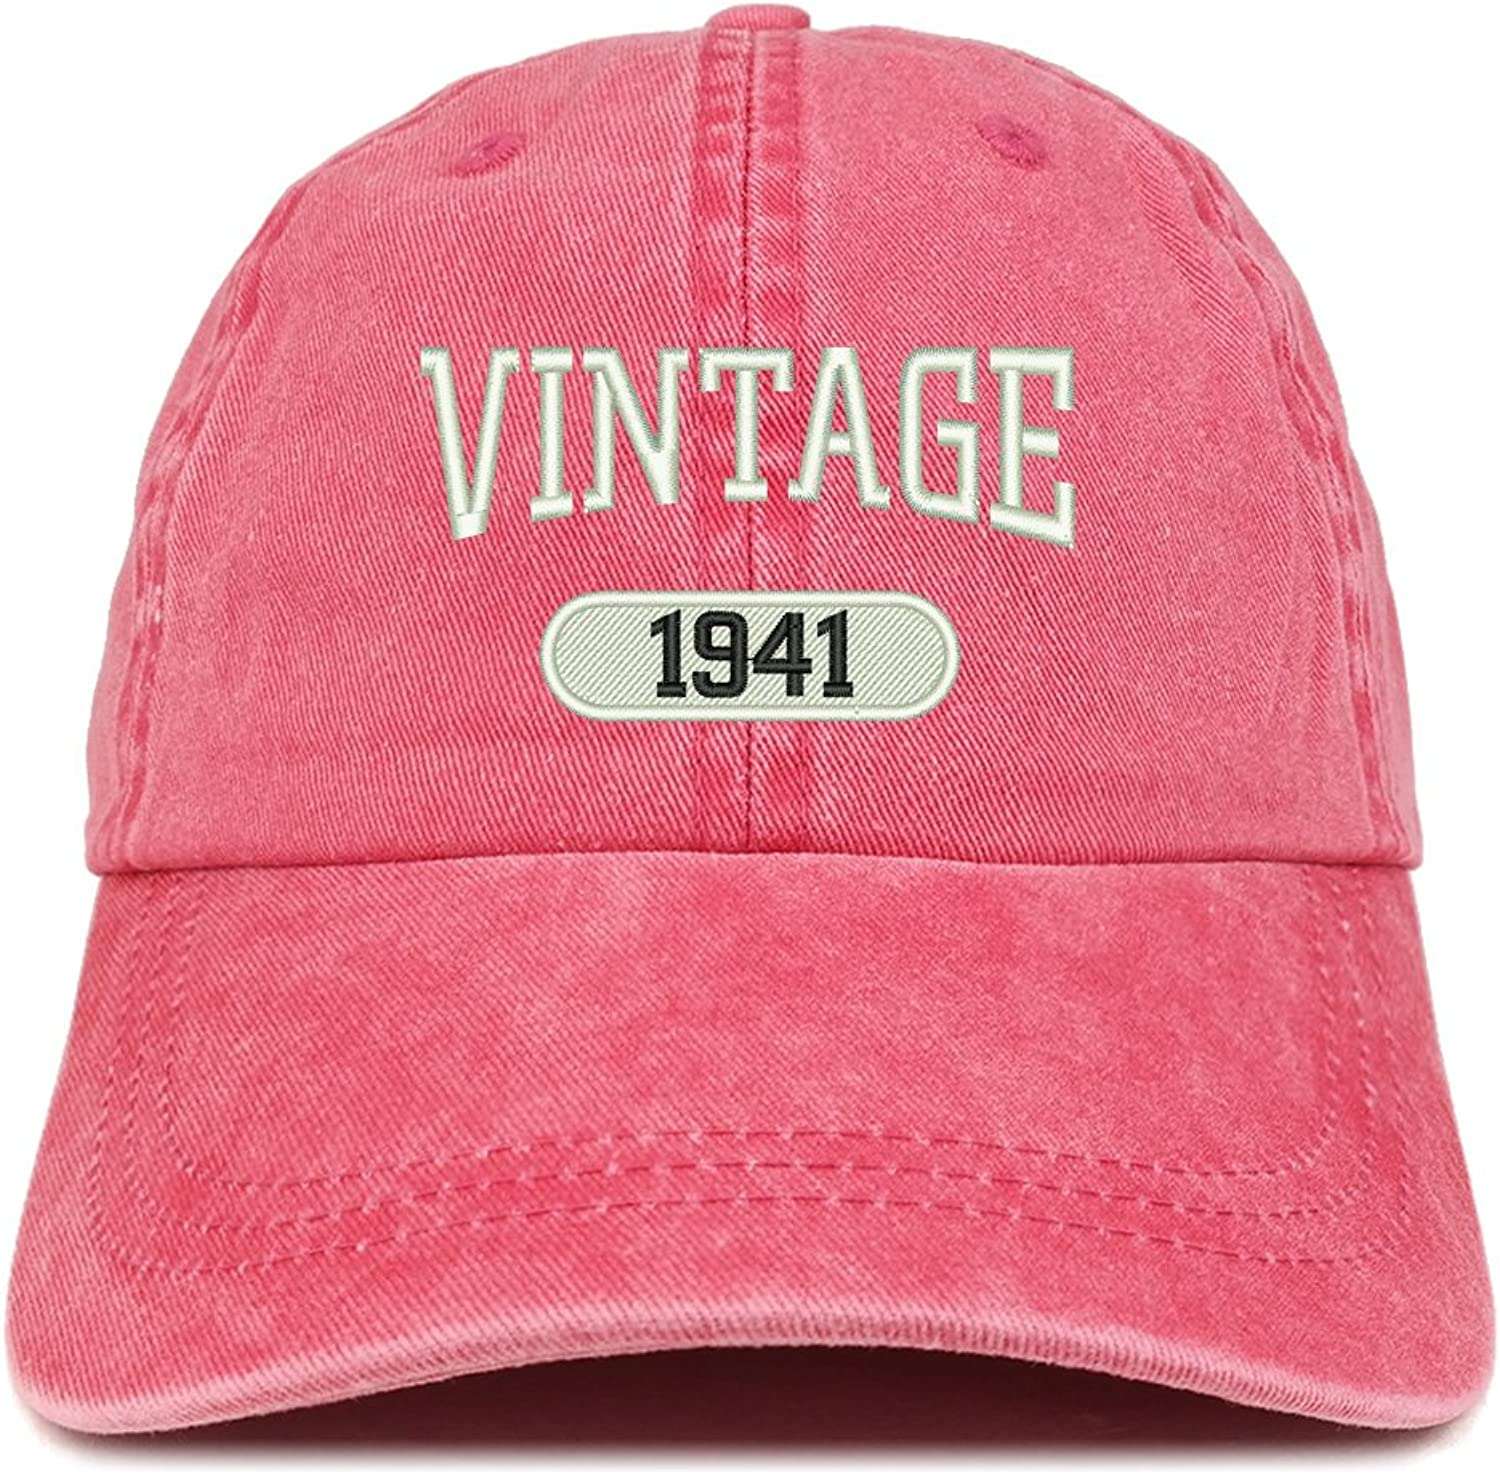 Trendy Apparel Shop Vintage 1941 Embroidered 78th Birthday Soft Crown Washed Cotton Cap